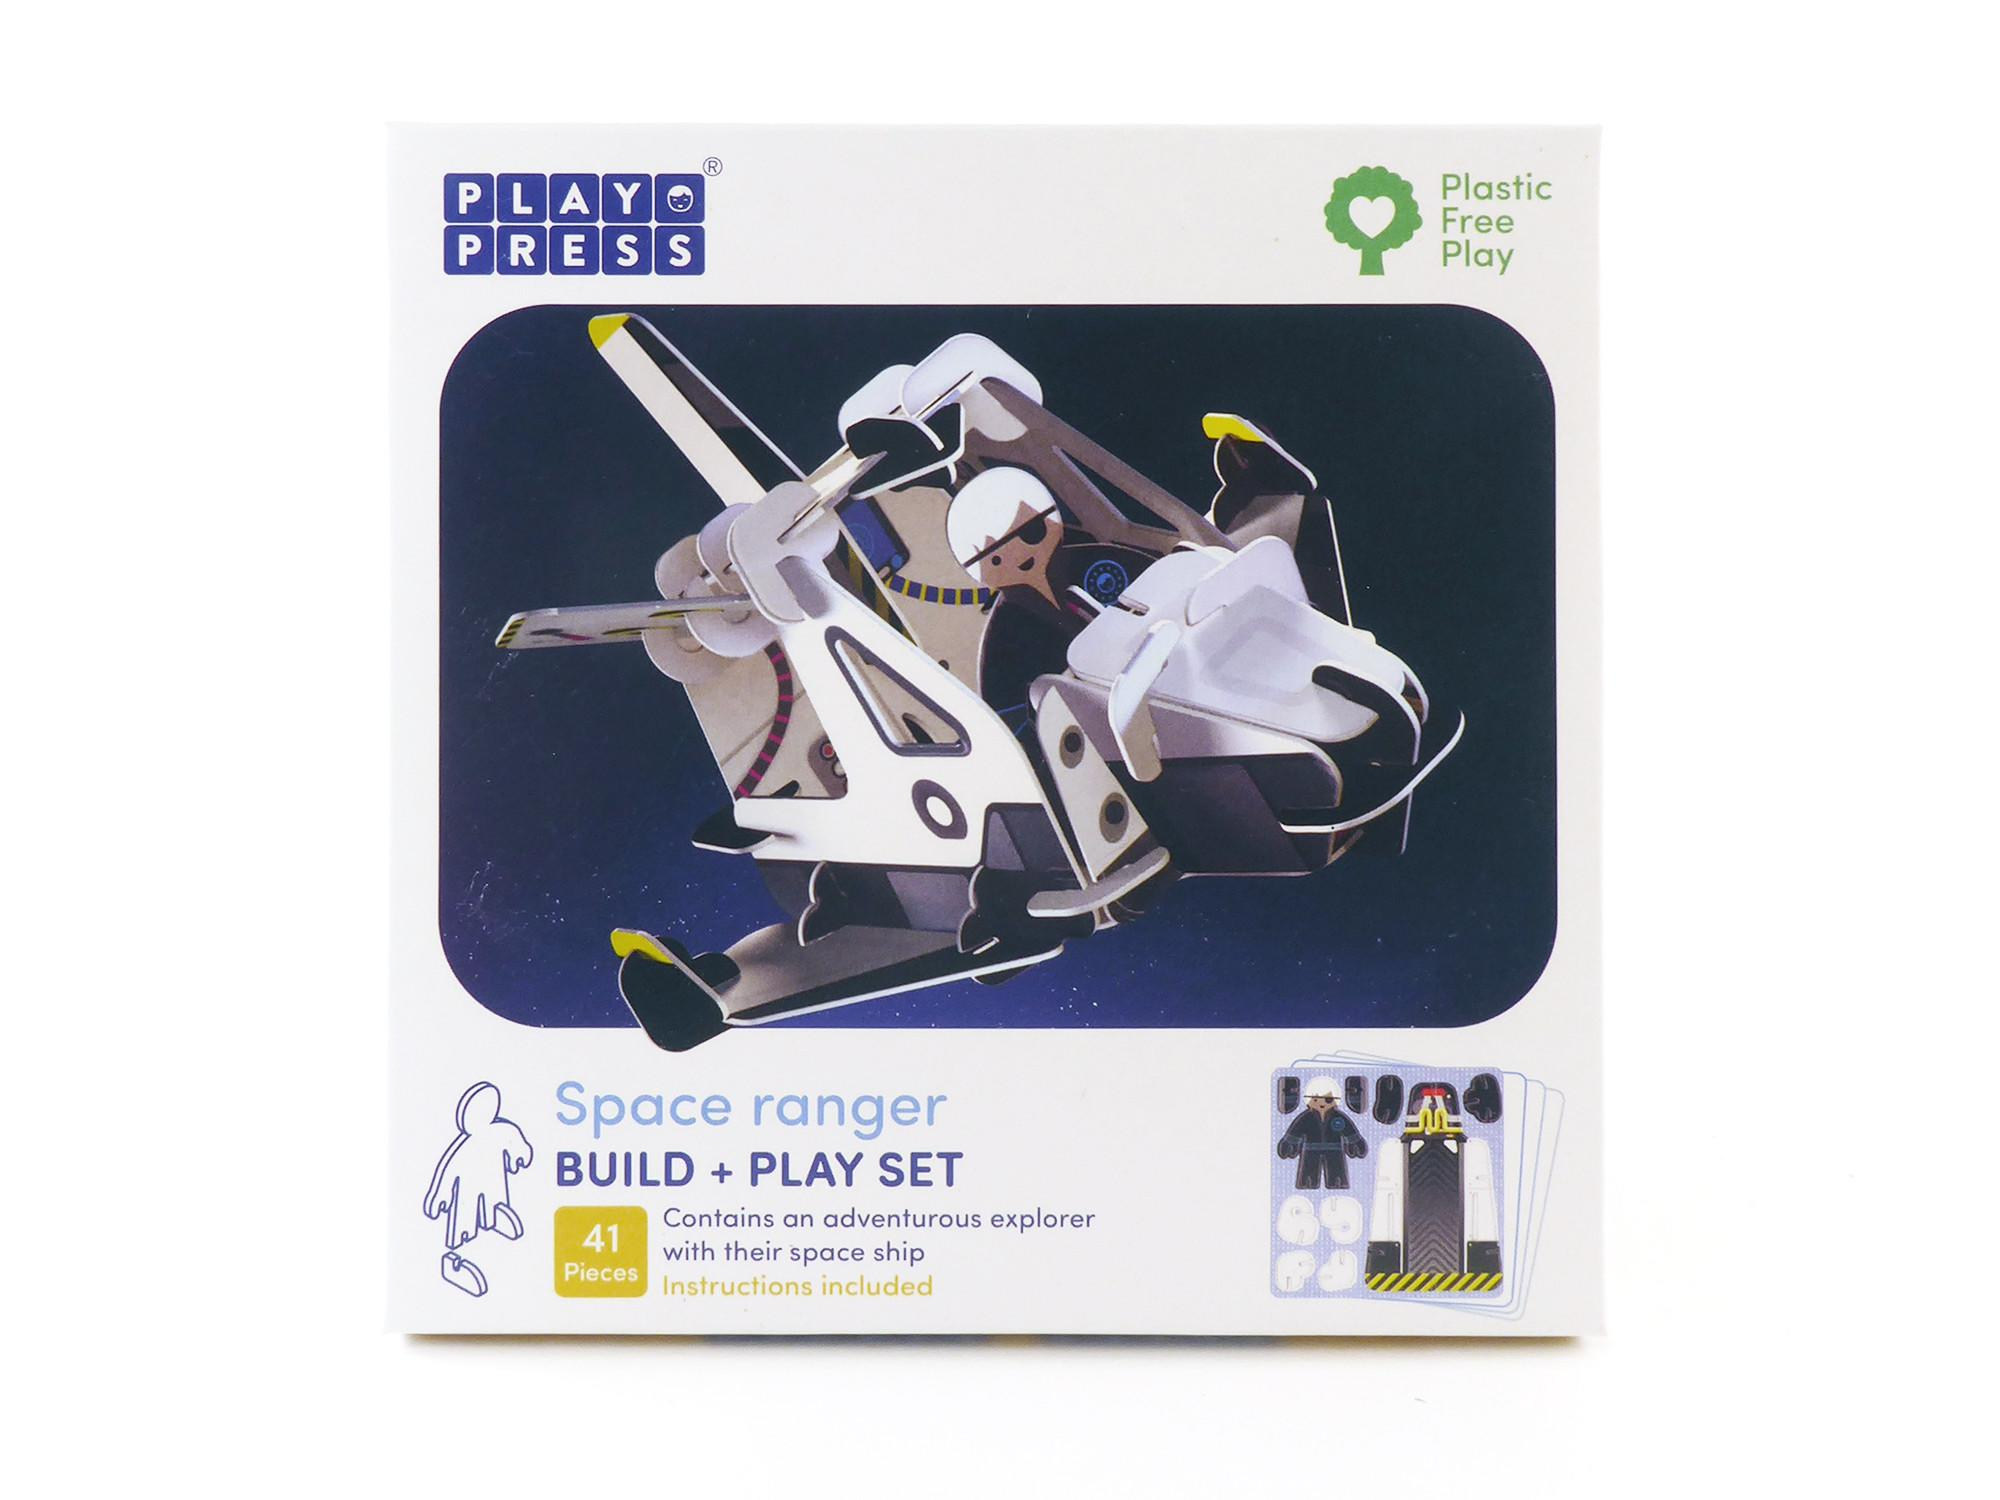 Box showing Play Press space ranger product.